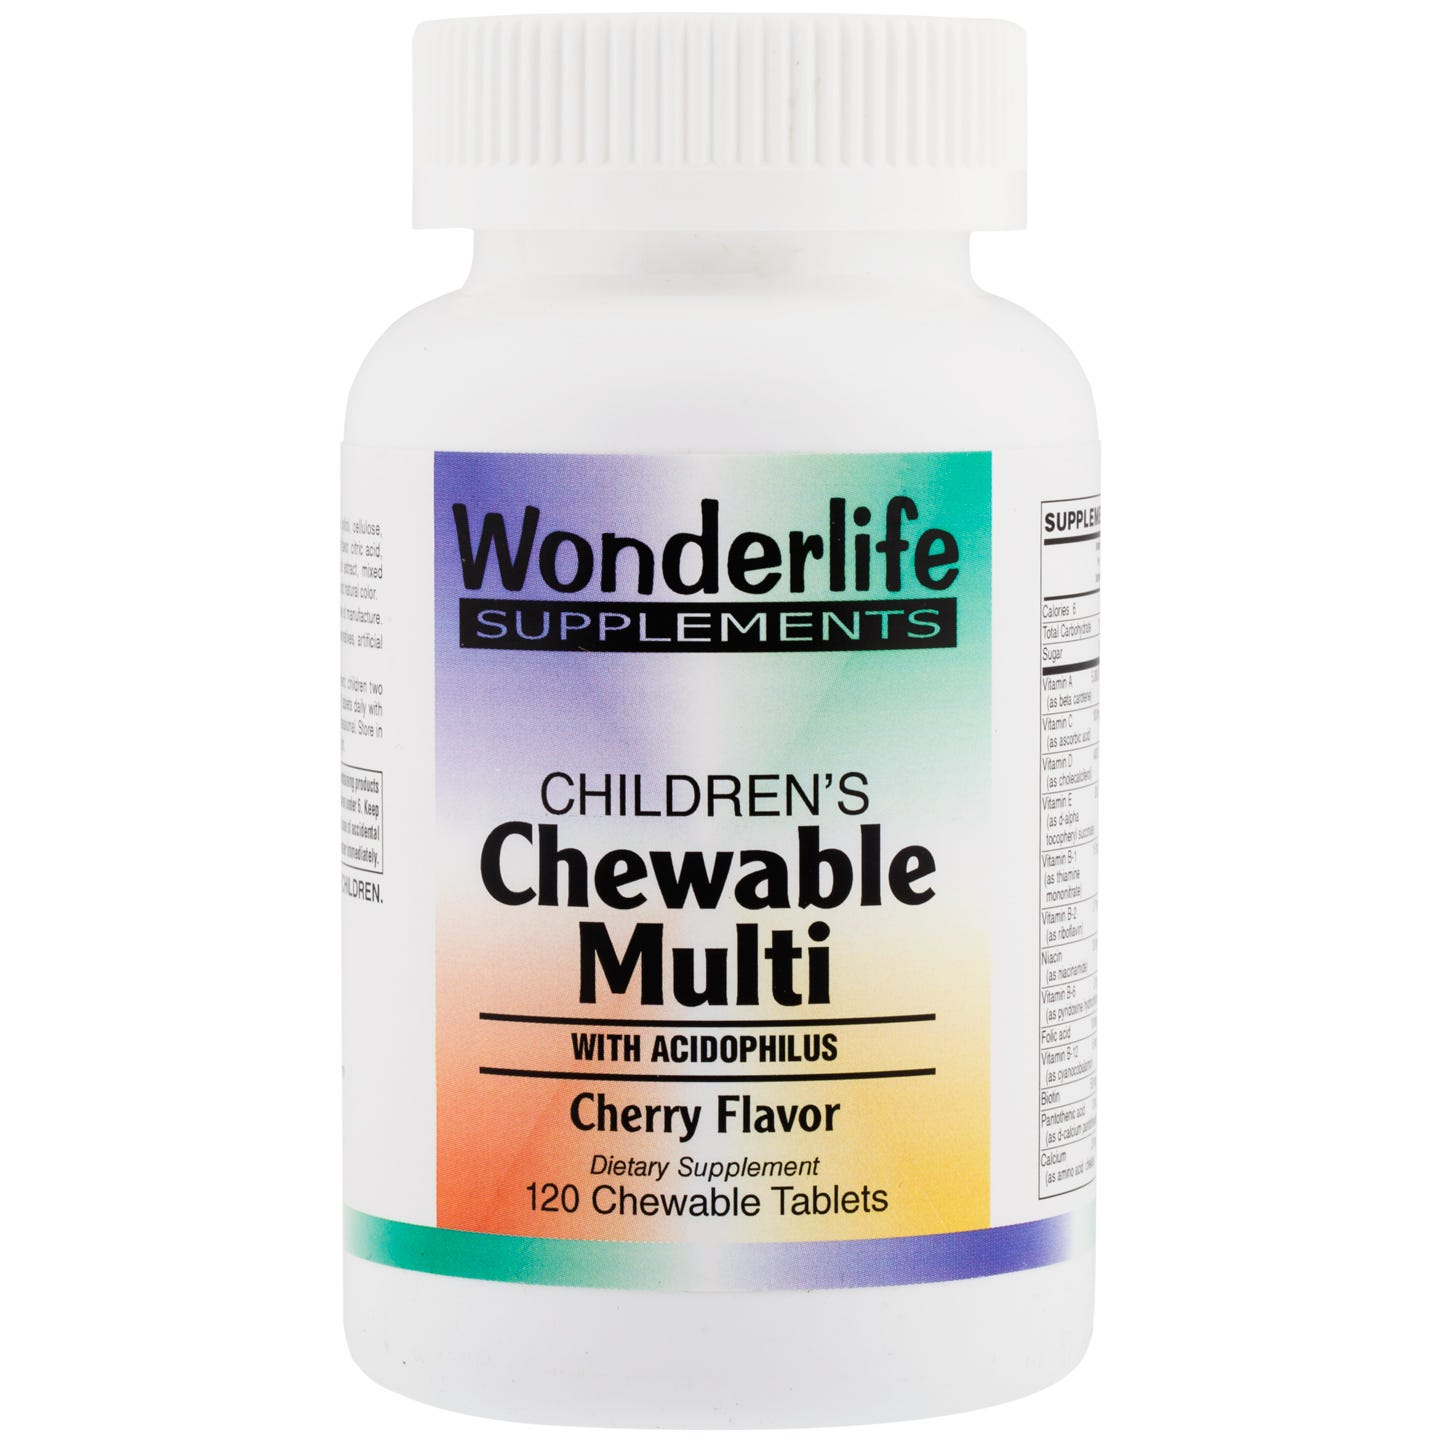 Children's Chewable Multi, Cherry (120 Tablets), Wonderlife - Rapid Diet Weight Loss Products Shop